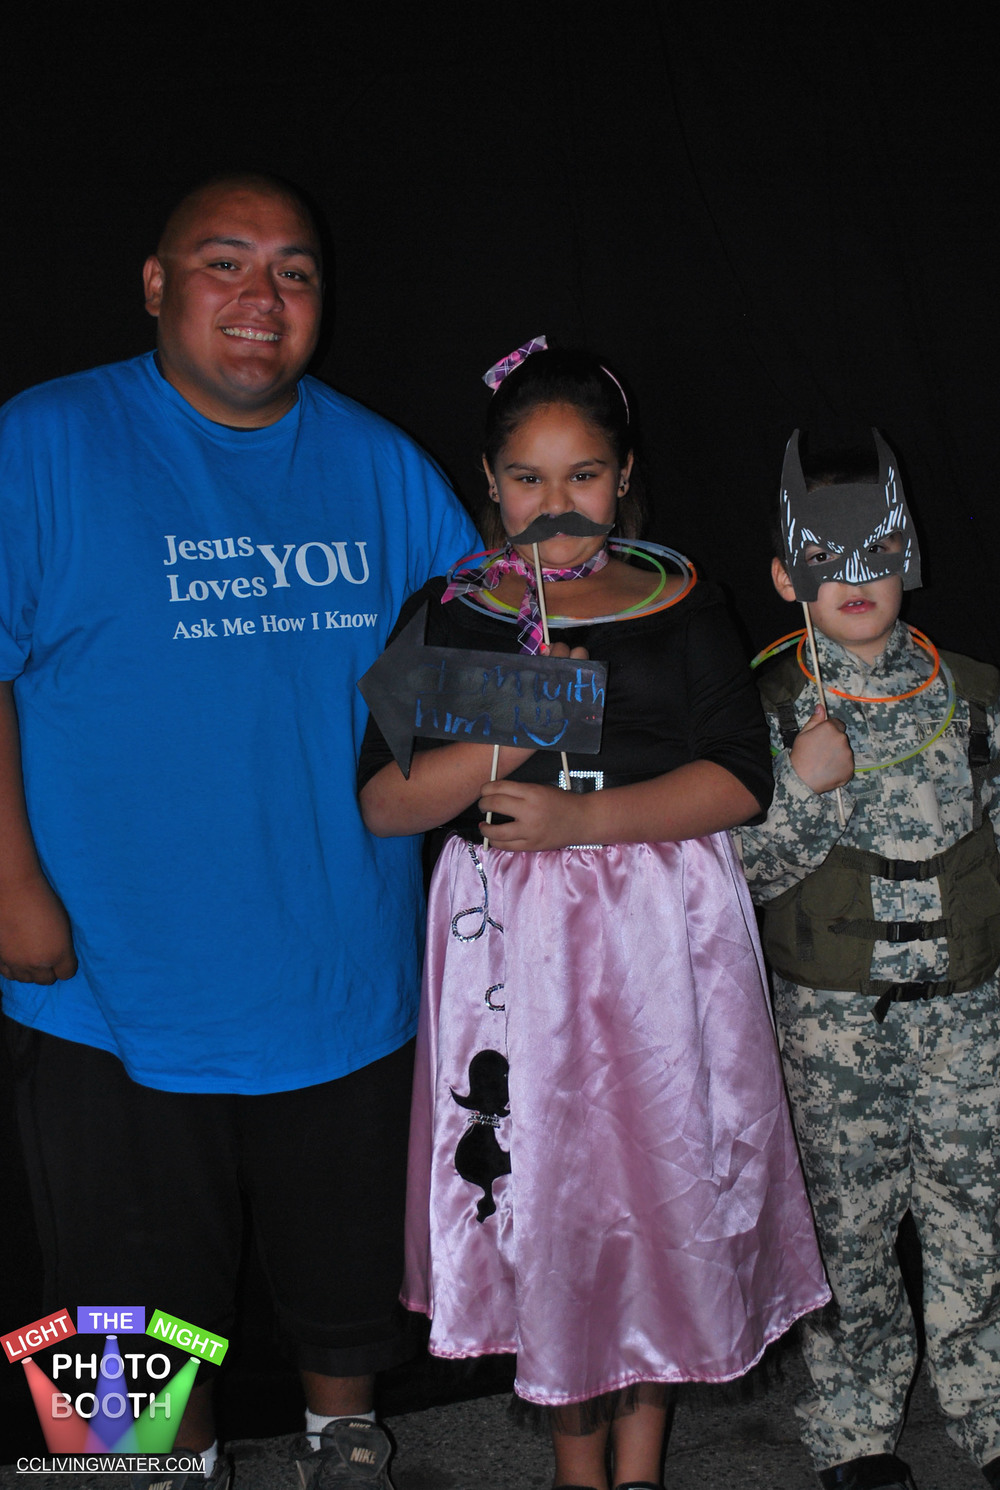 2014-10 - Light The Night Photo Booth (53) copy.jpg